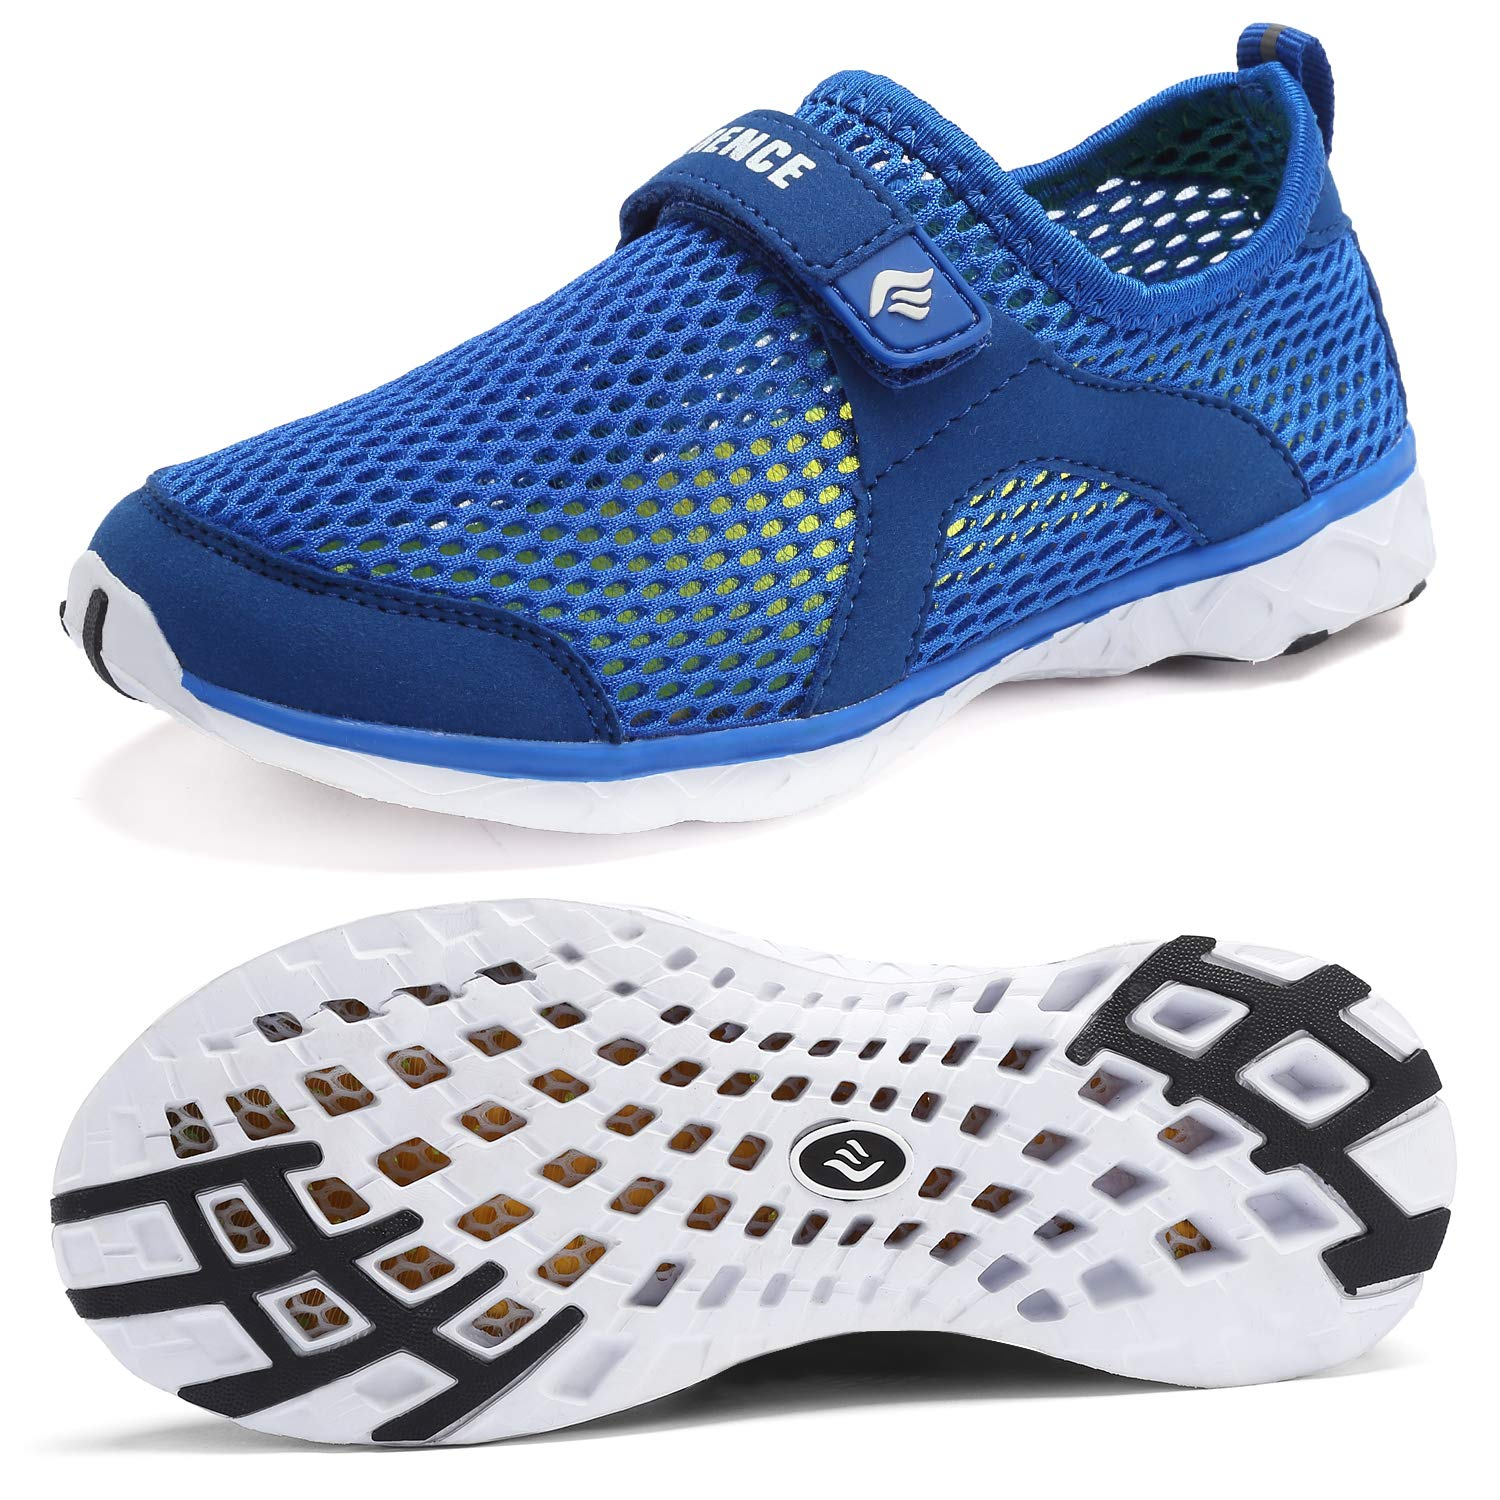 CIOR Boys & Girls Water Shoes Aqua Shoes Athletic Sneakers Lightweight Sport Shoes(Toddler/Little Kid/Big Kid)